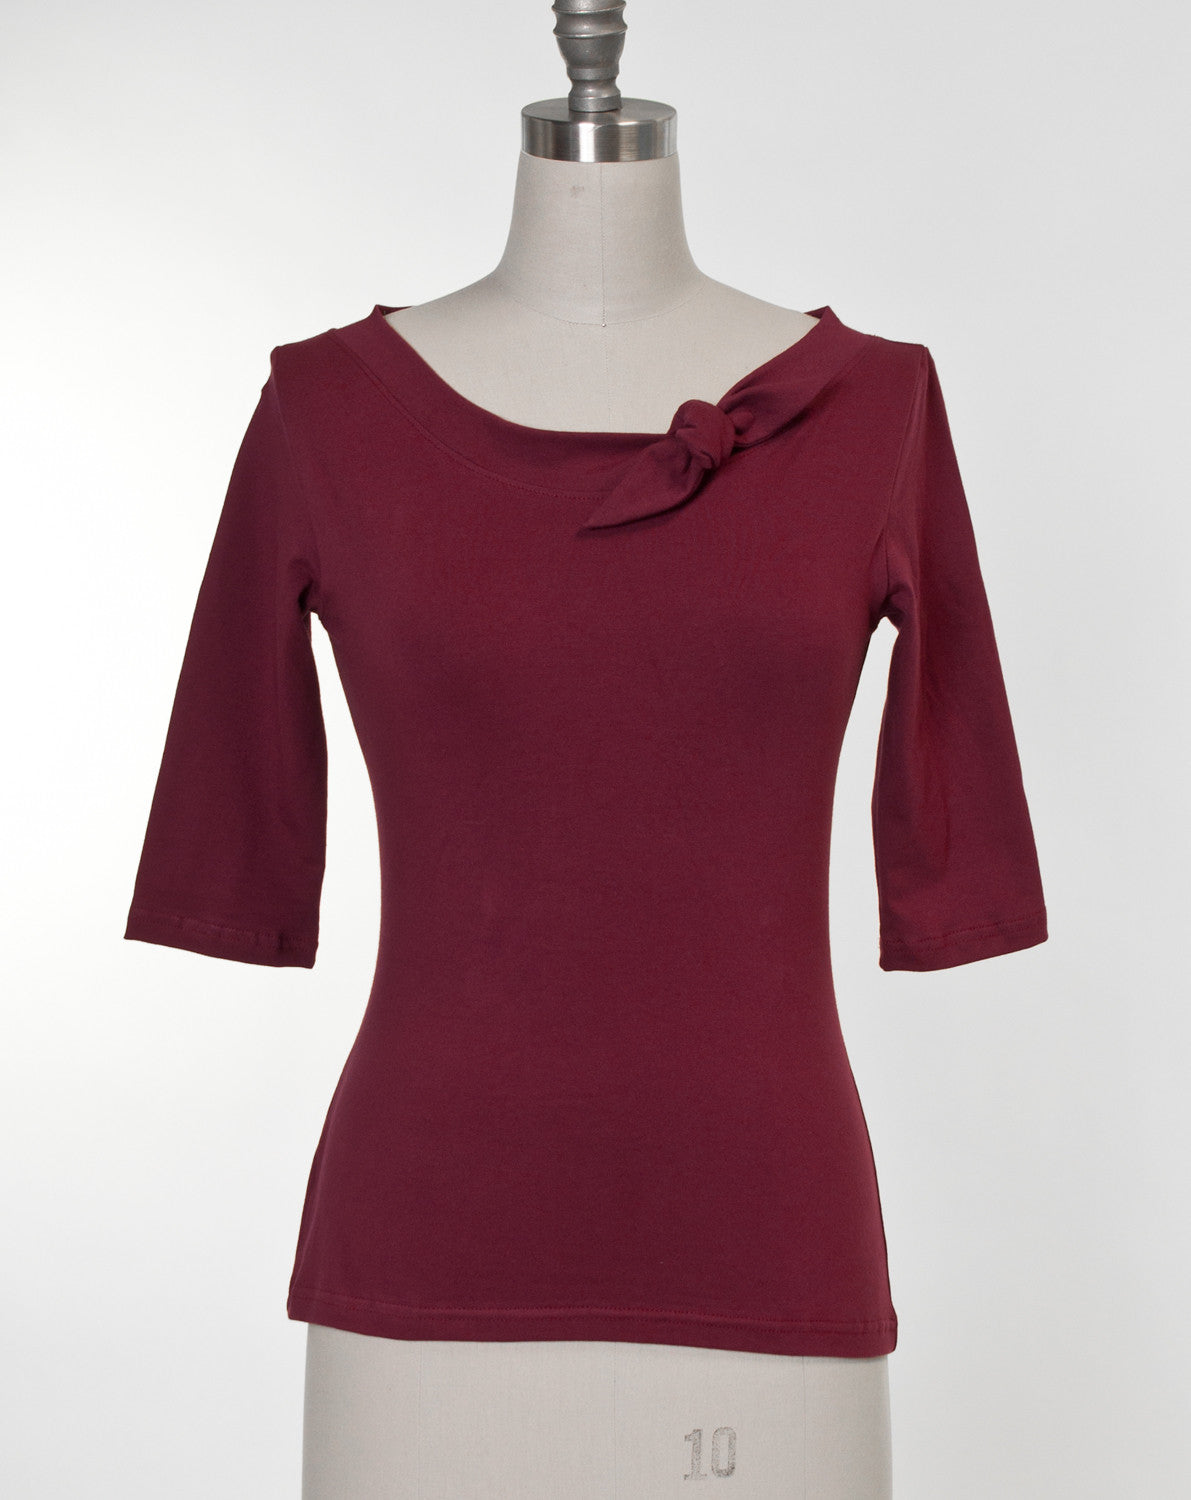 Lily Top - Burgundy - Heart of Haute